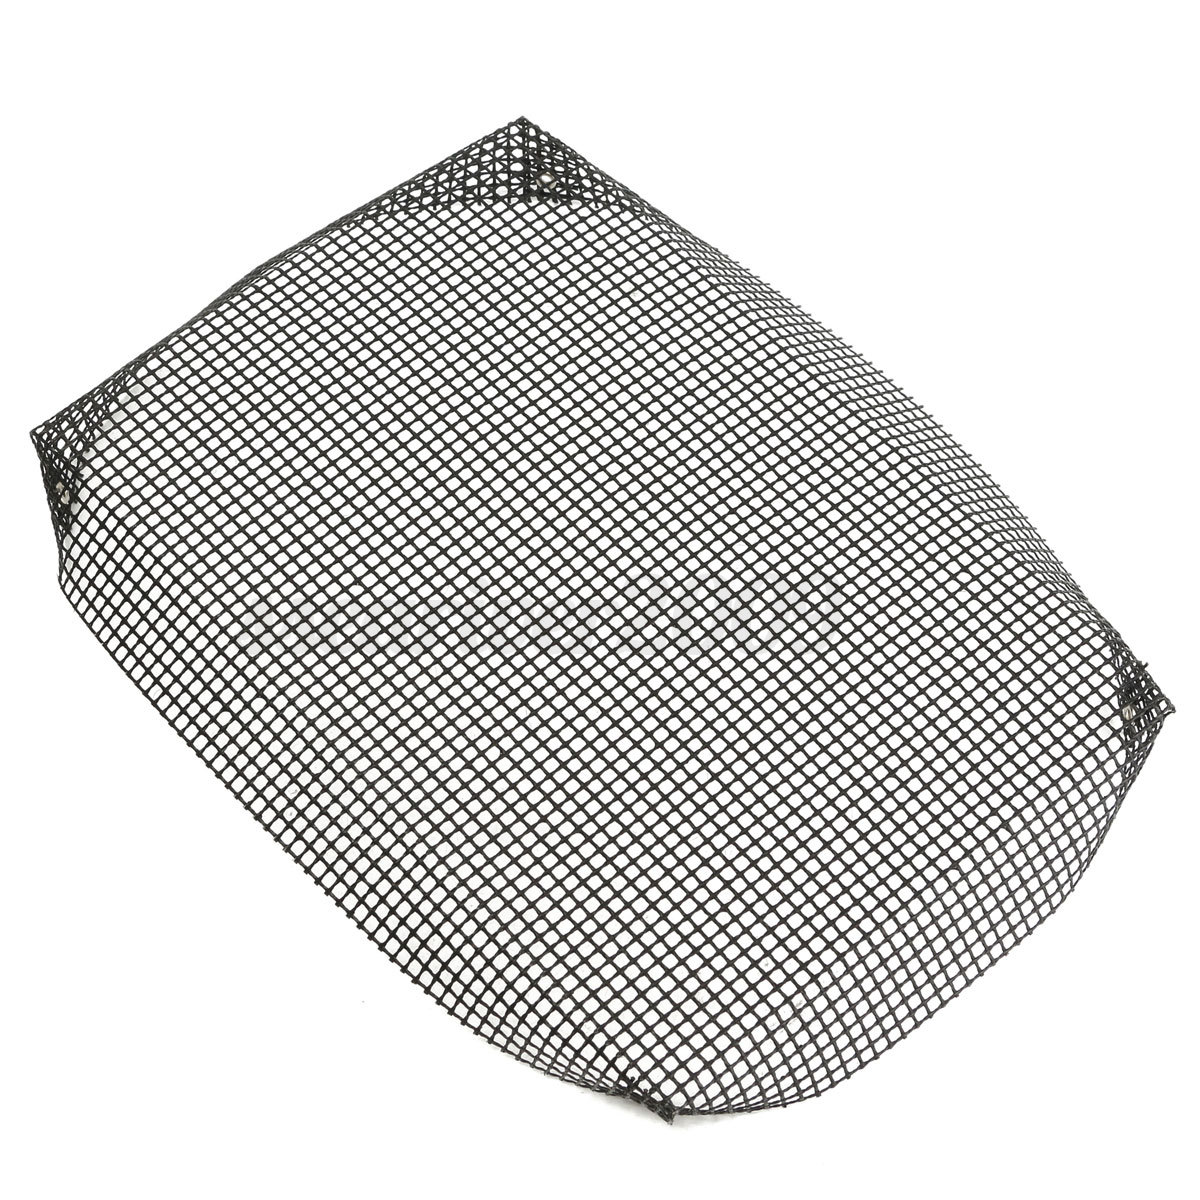 Recycling Non Stick Chip Mesh Oven Bake Tray Grilling